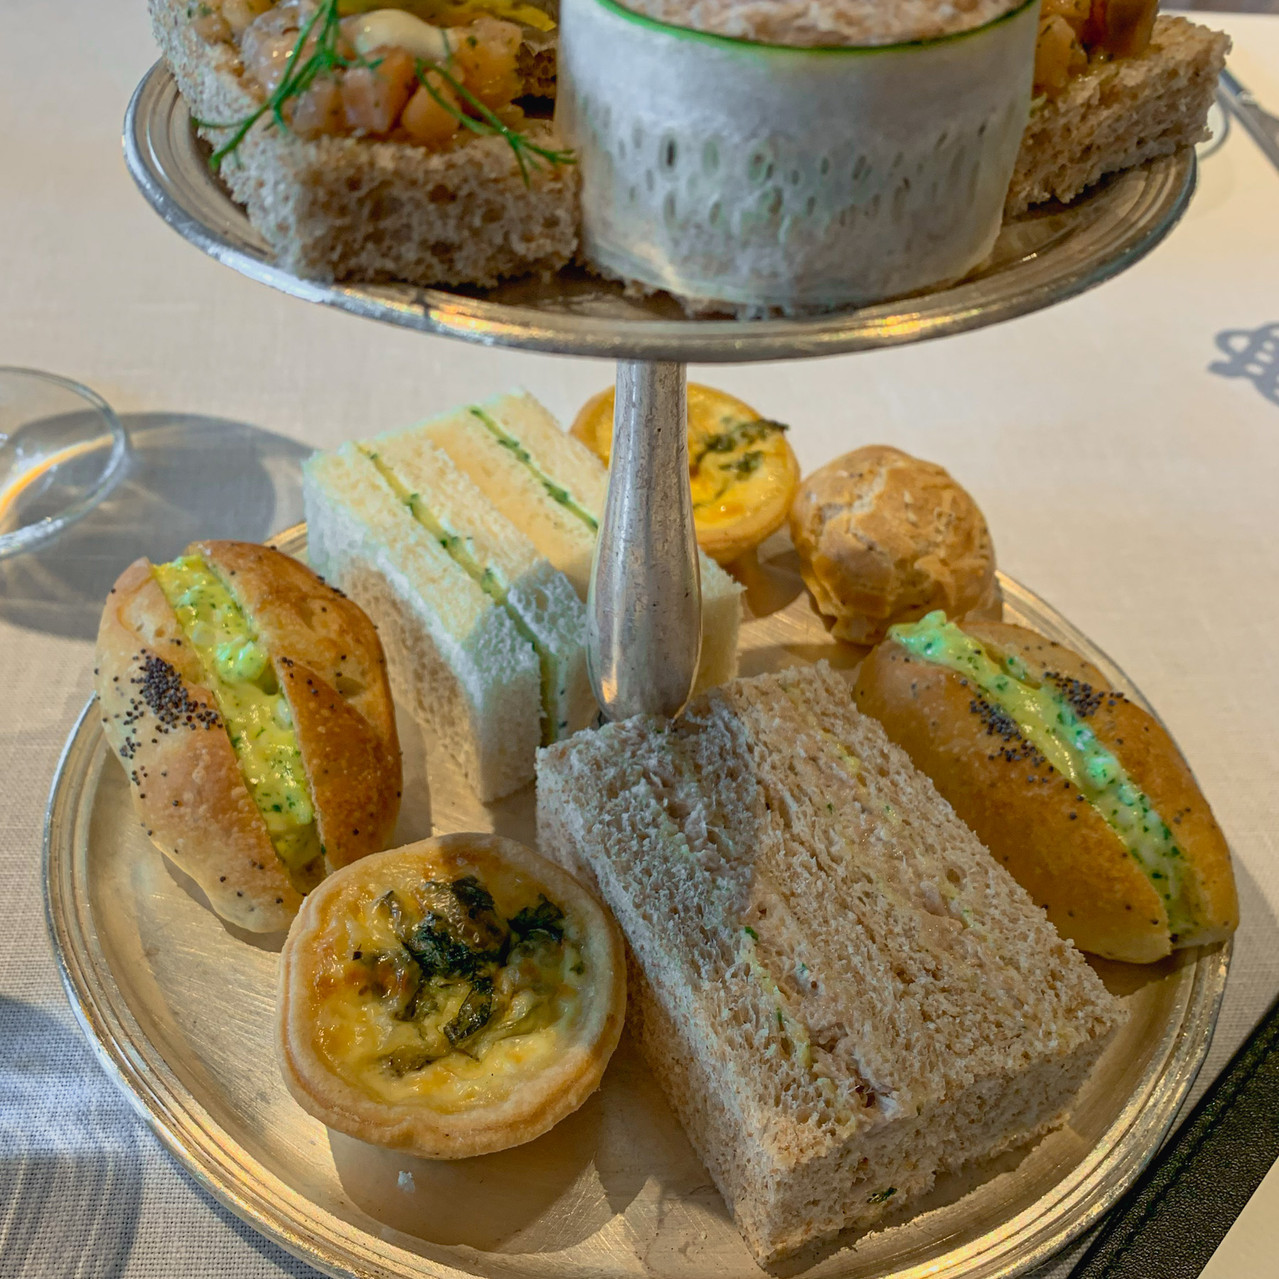 E&O Hotel afternoon tea: Assorted finger sandwiches on afternoon tea tray, RollingBear Travels blog.